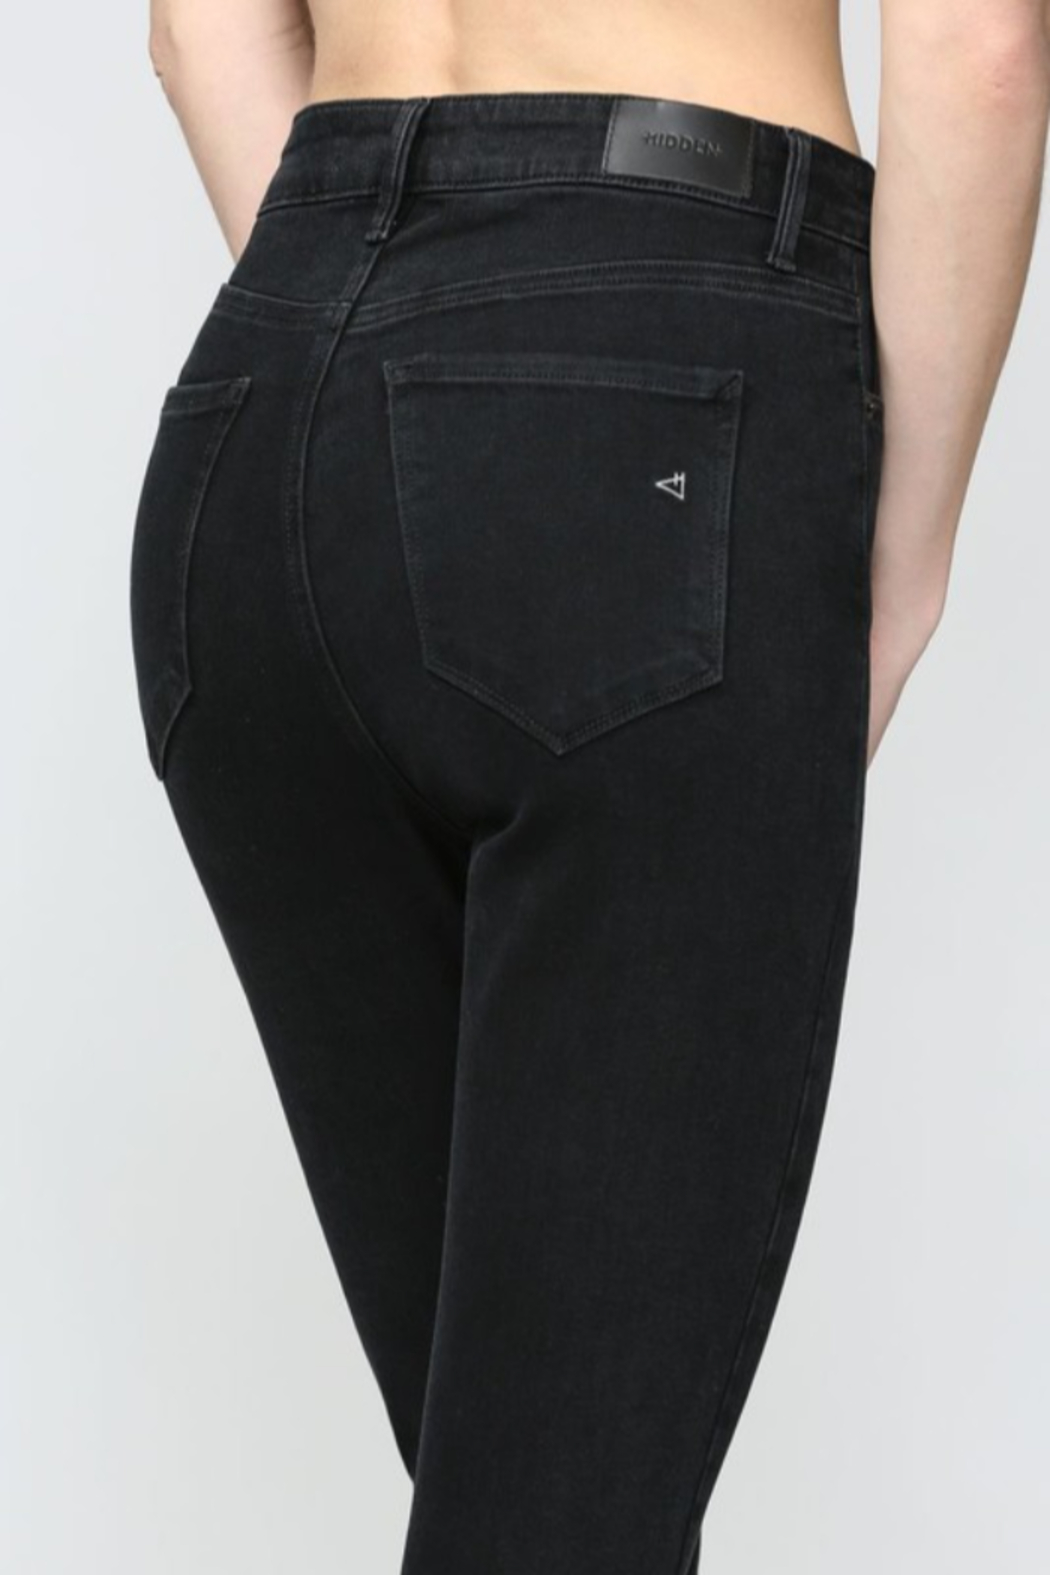 Hidden Jeans Taylor Exposed Buttons Skinny - Back Cropped Image